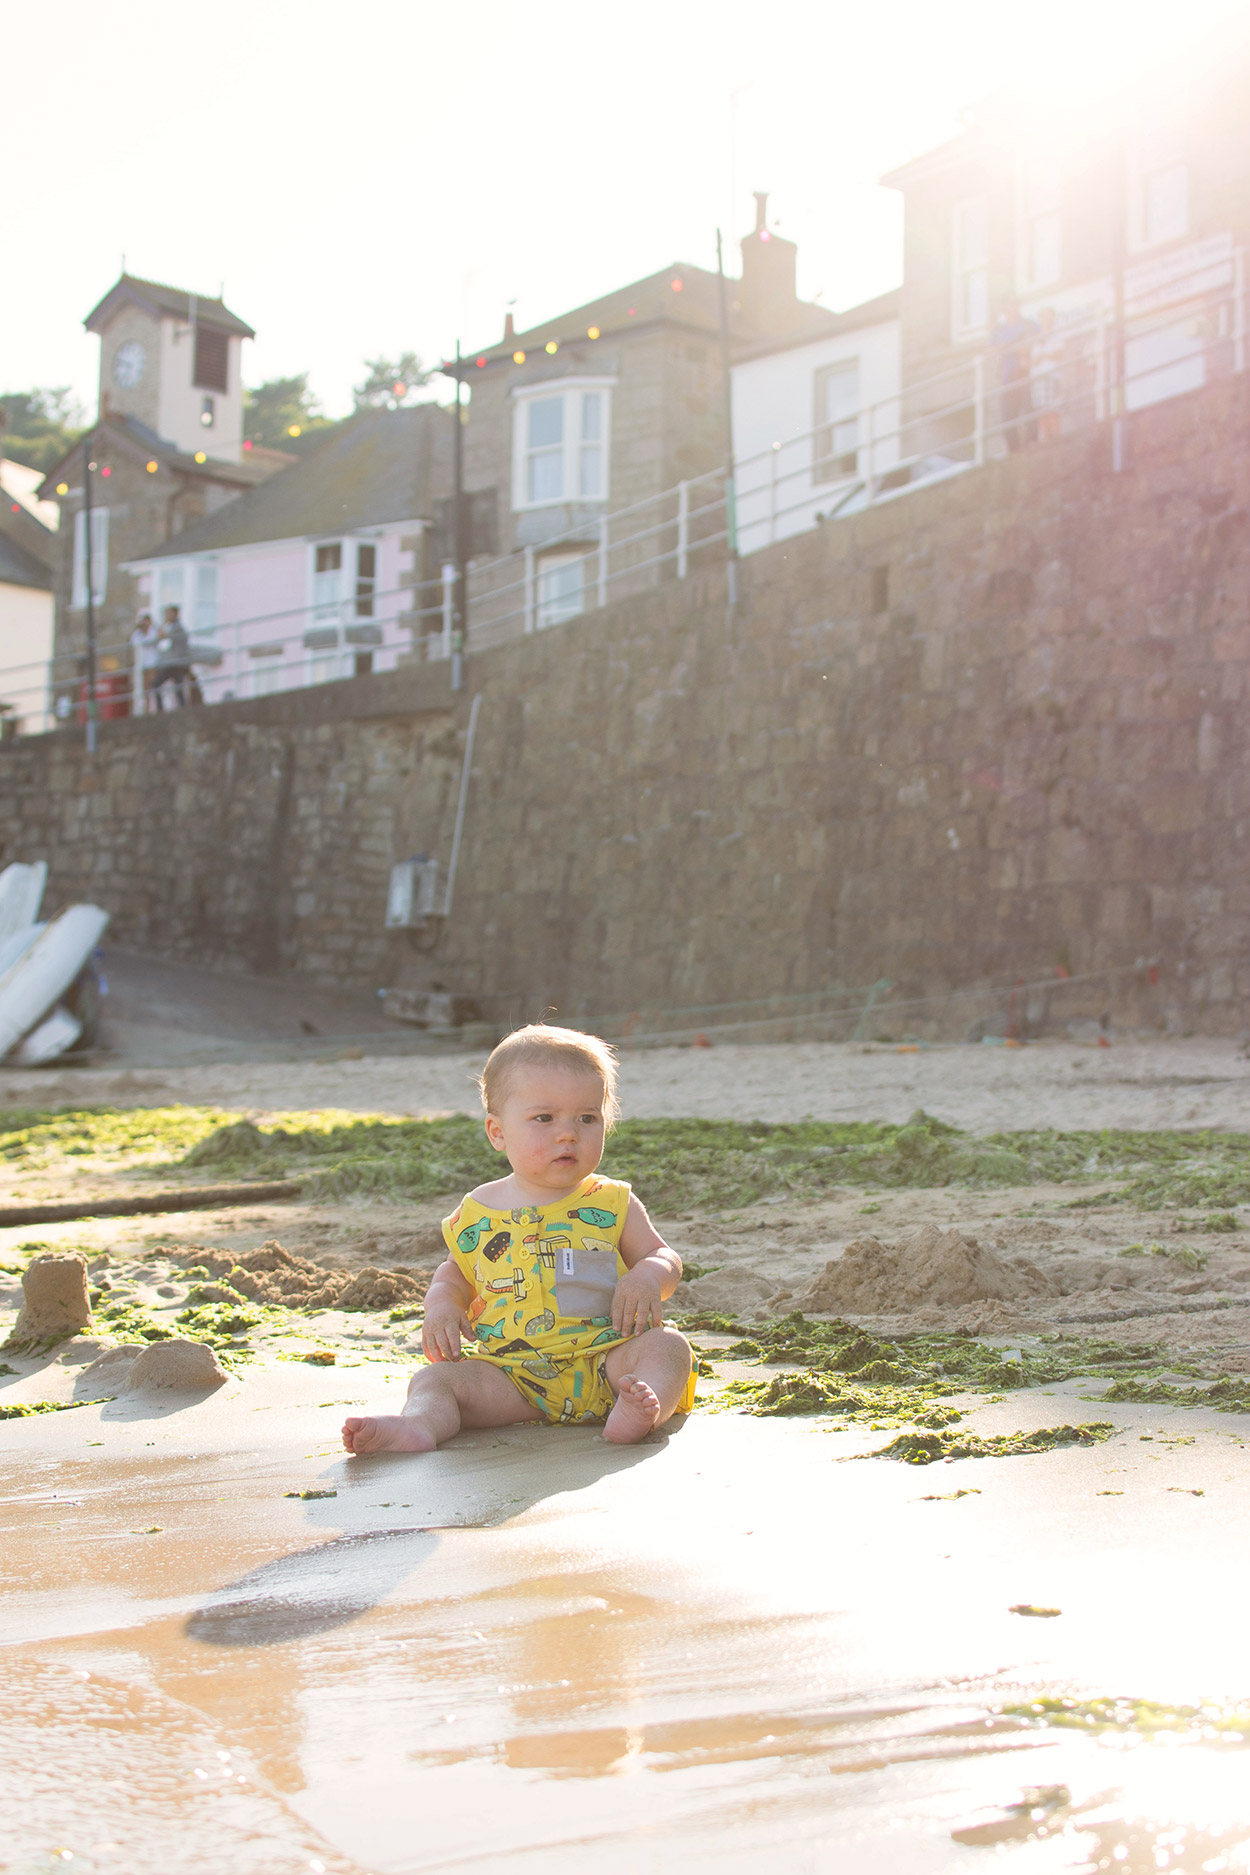 Two brothers, aged 1 and 3 wearing Indikidual sushi playsuits and playing on the harbour beach, splashing in the sea in Mousehole, near Penzance, Aspects Holidays